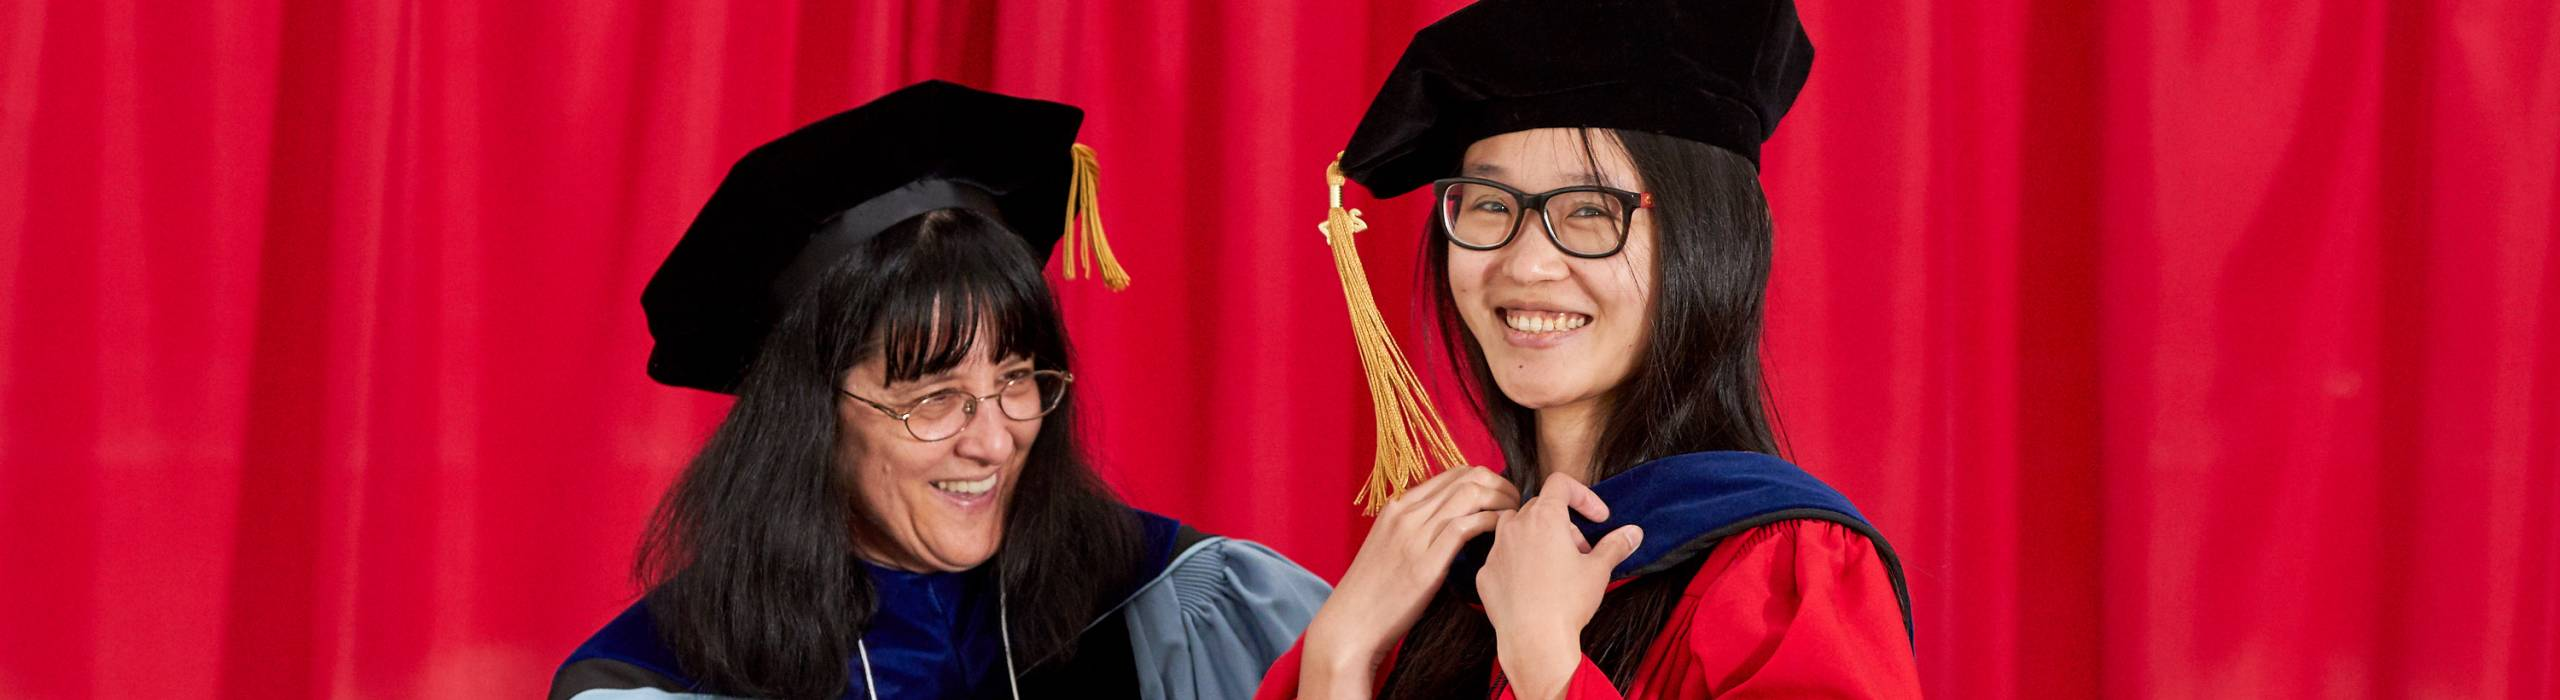 Emily Sun (Info Sci PhD '17) at Info Sci's 2017 commencement ceremonies.